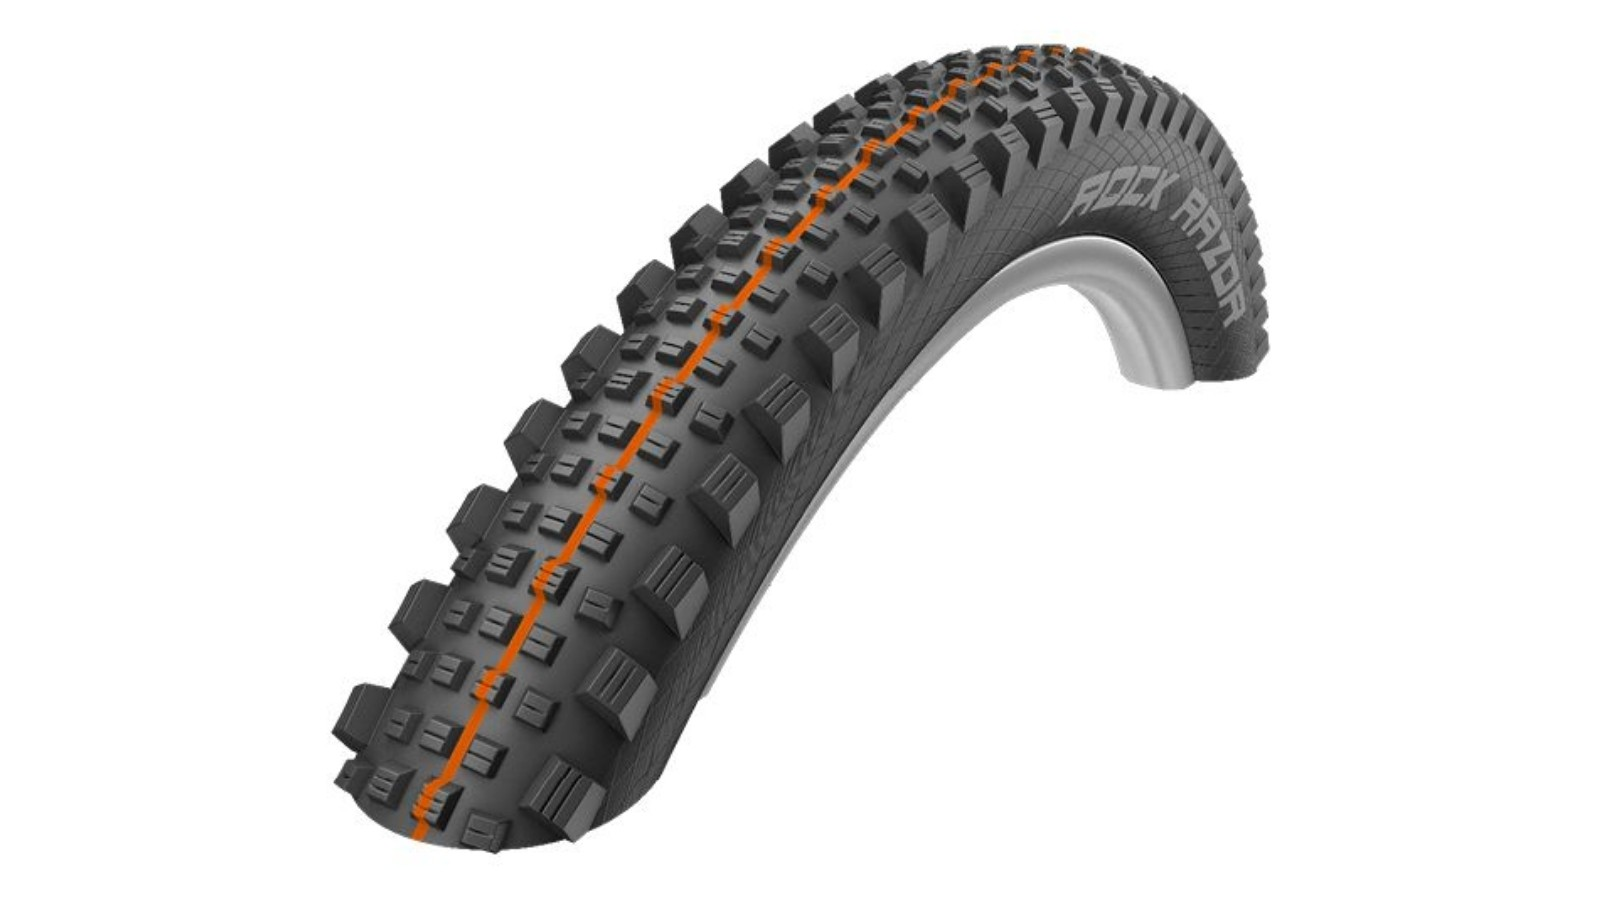 The Schwalbe Rock Razor is a good rear tyre option with the Addix Soft compound